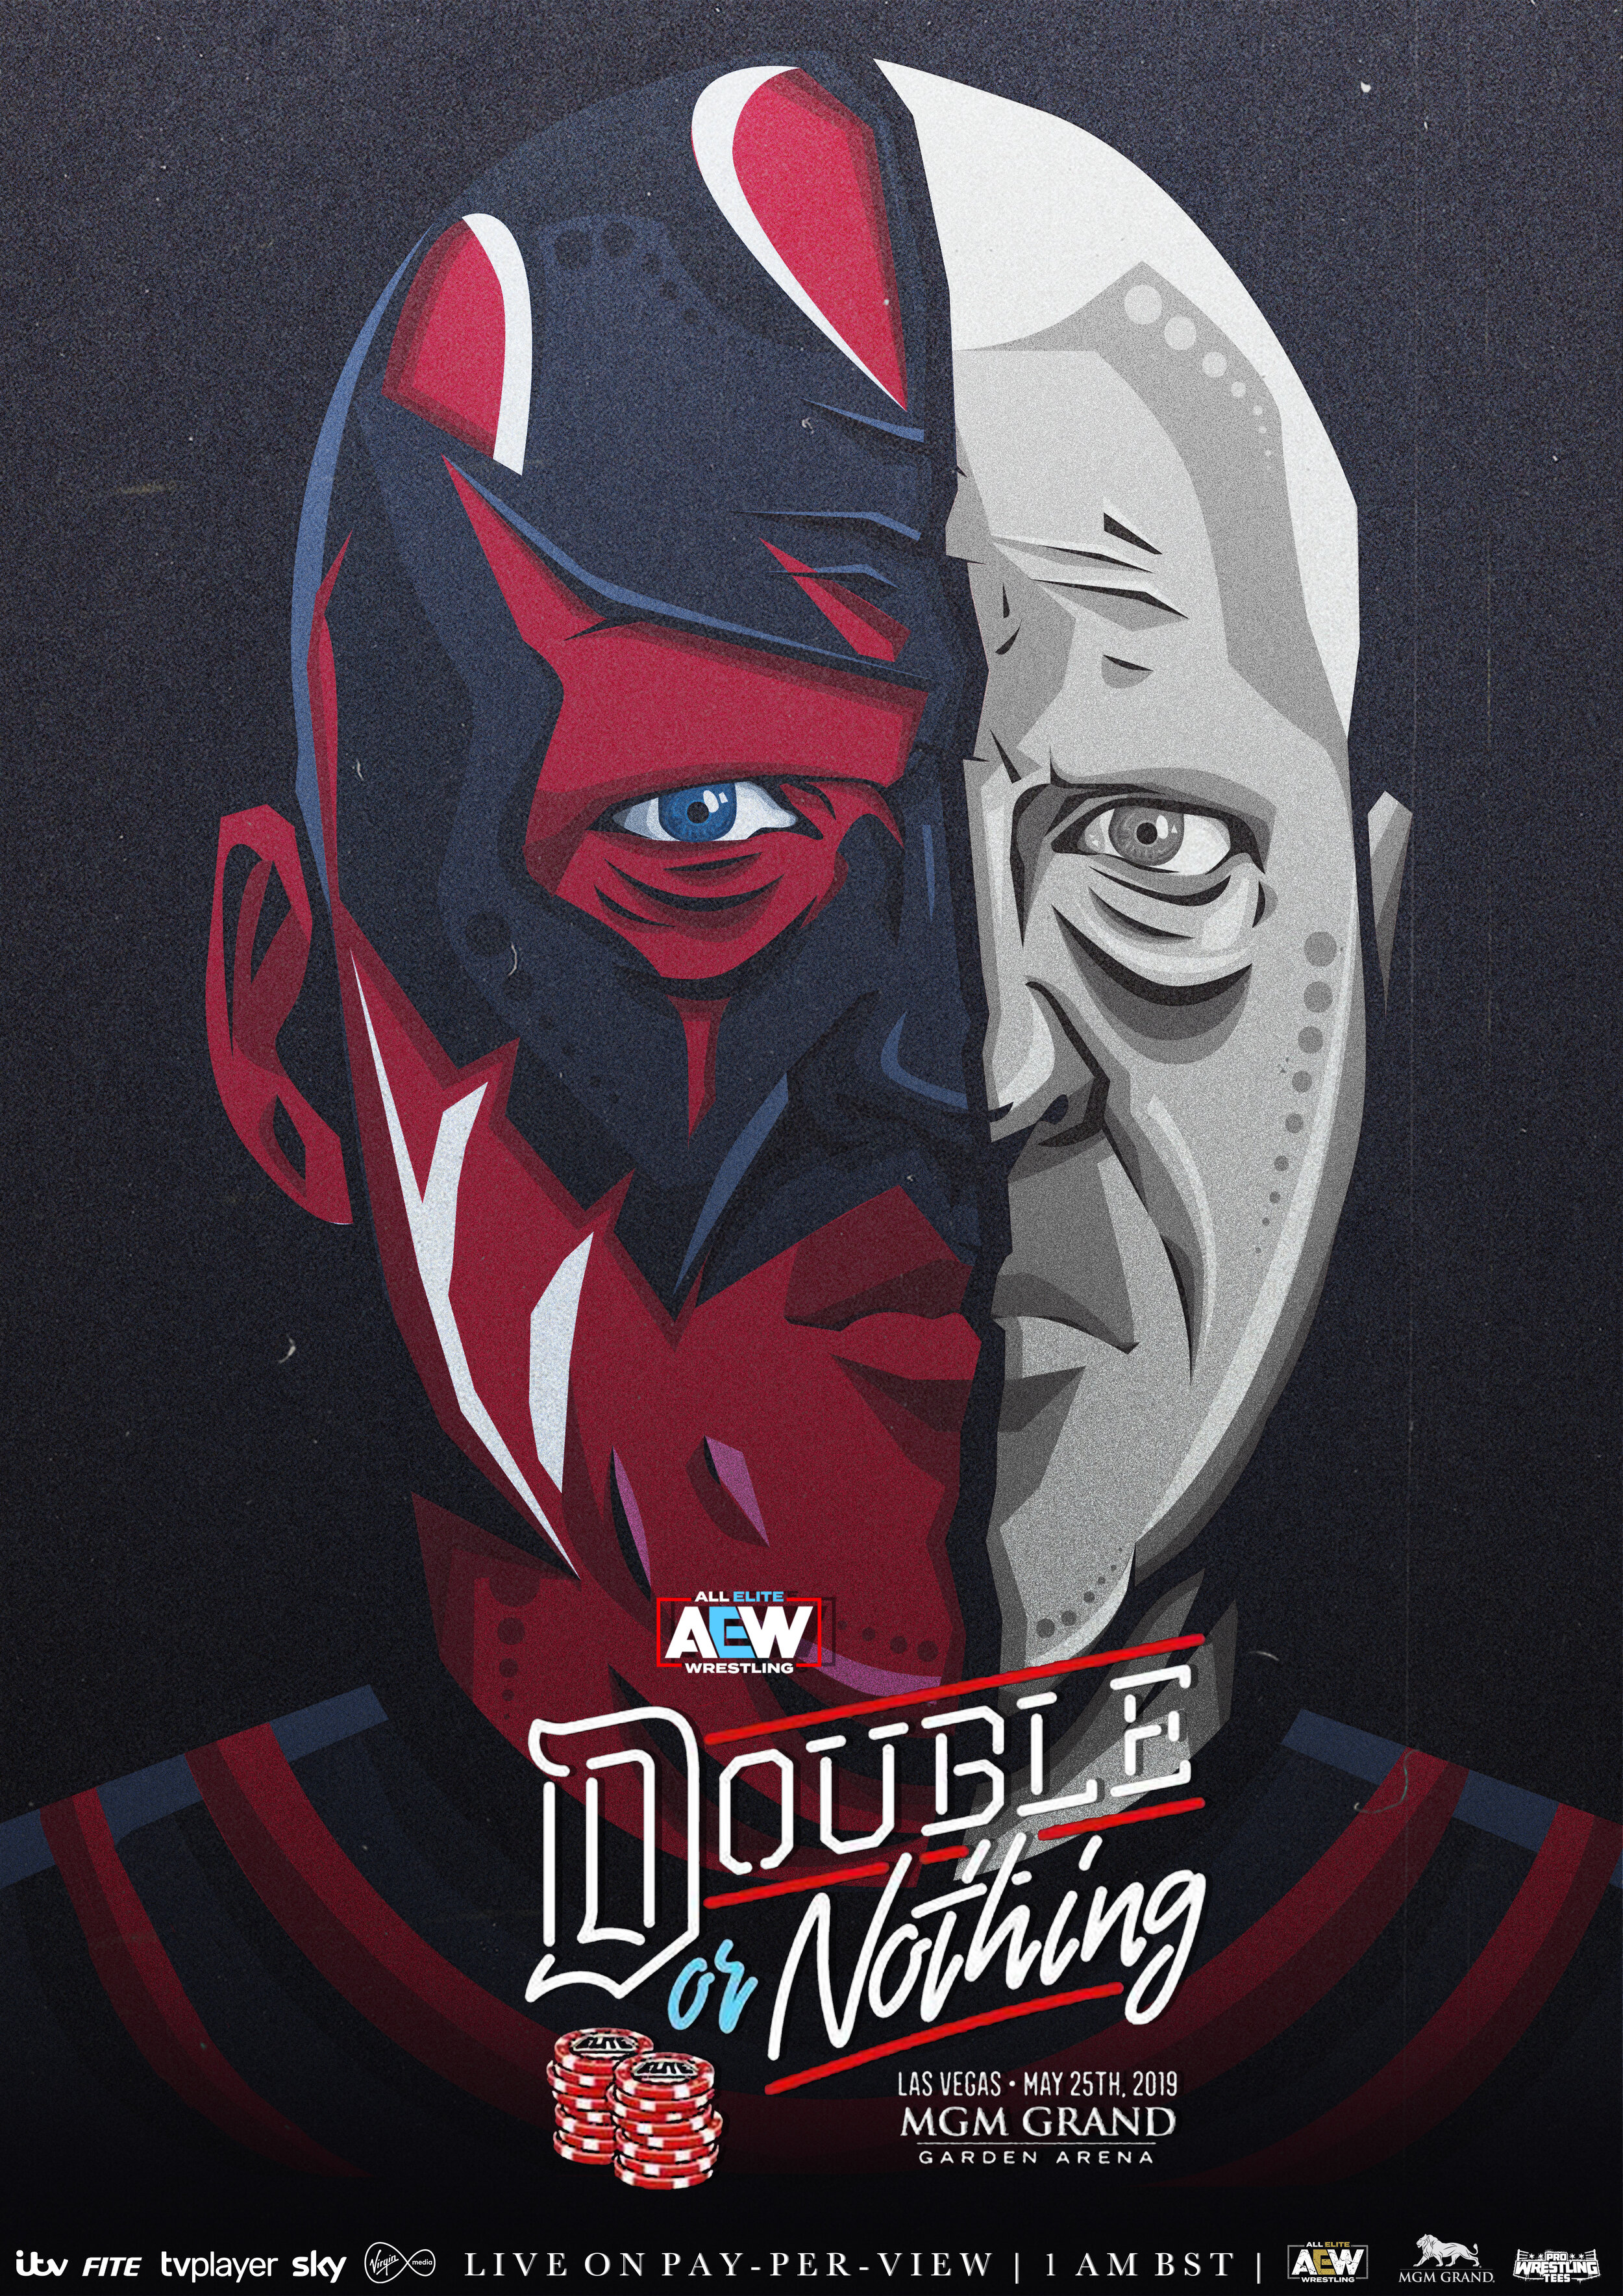 DOUBLE OR NOTHING - Digitally illustrated poster for AEW's upcoming pro wrestling event Double or Nothing.